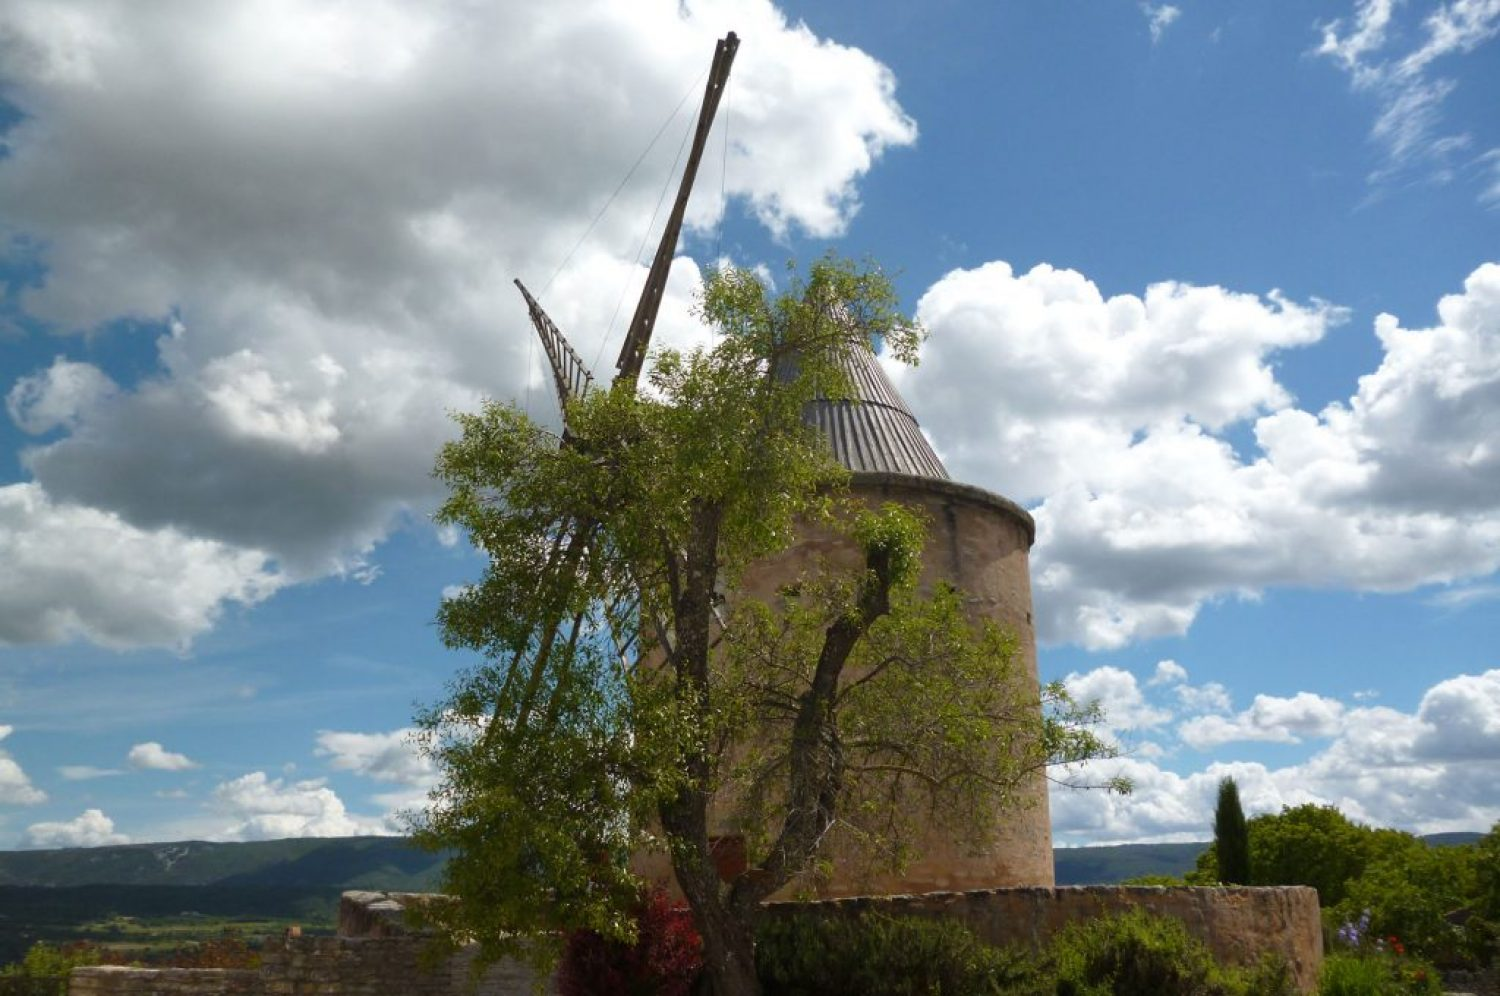 Windmill of the provençal villages